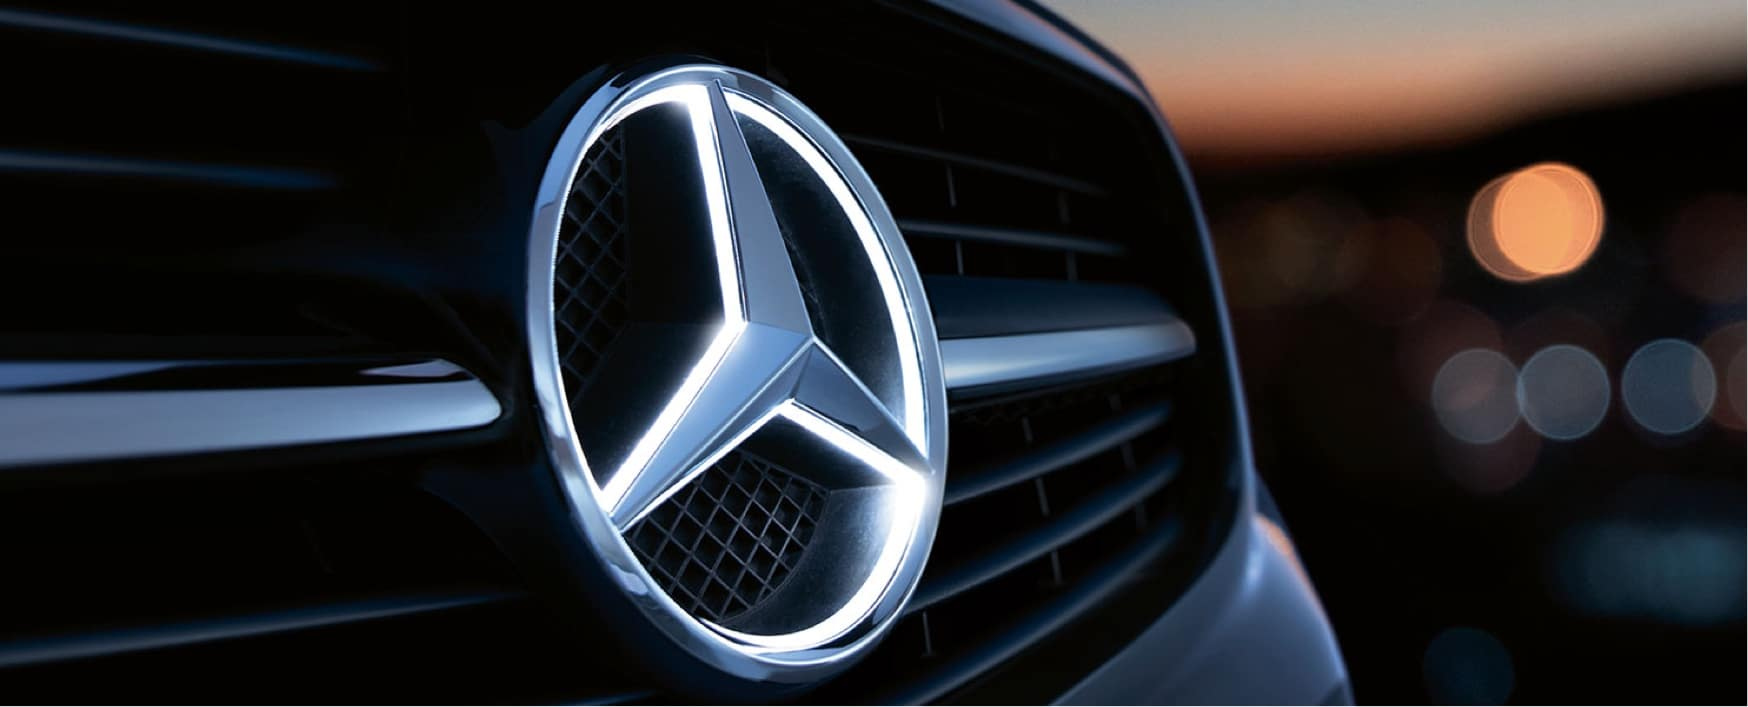 Mercedes-Benz Illuminated Star